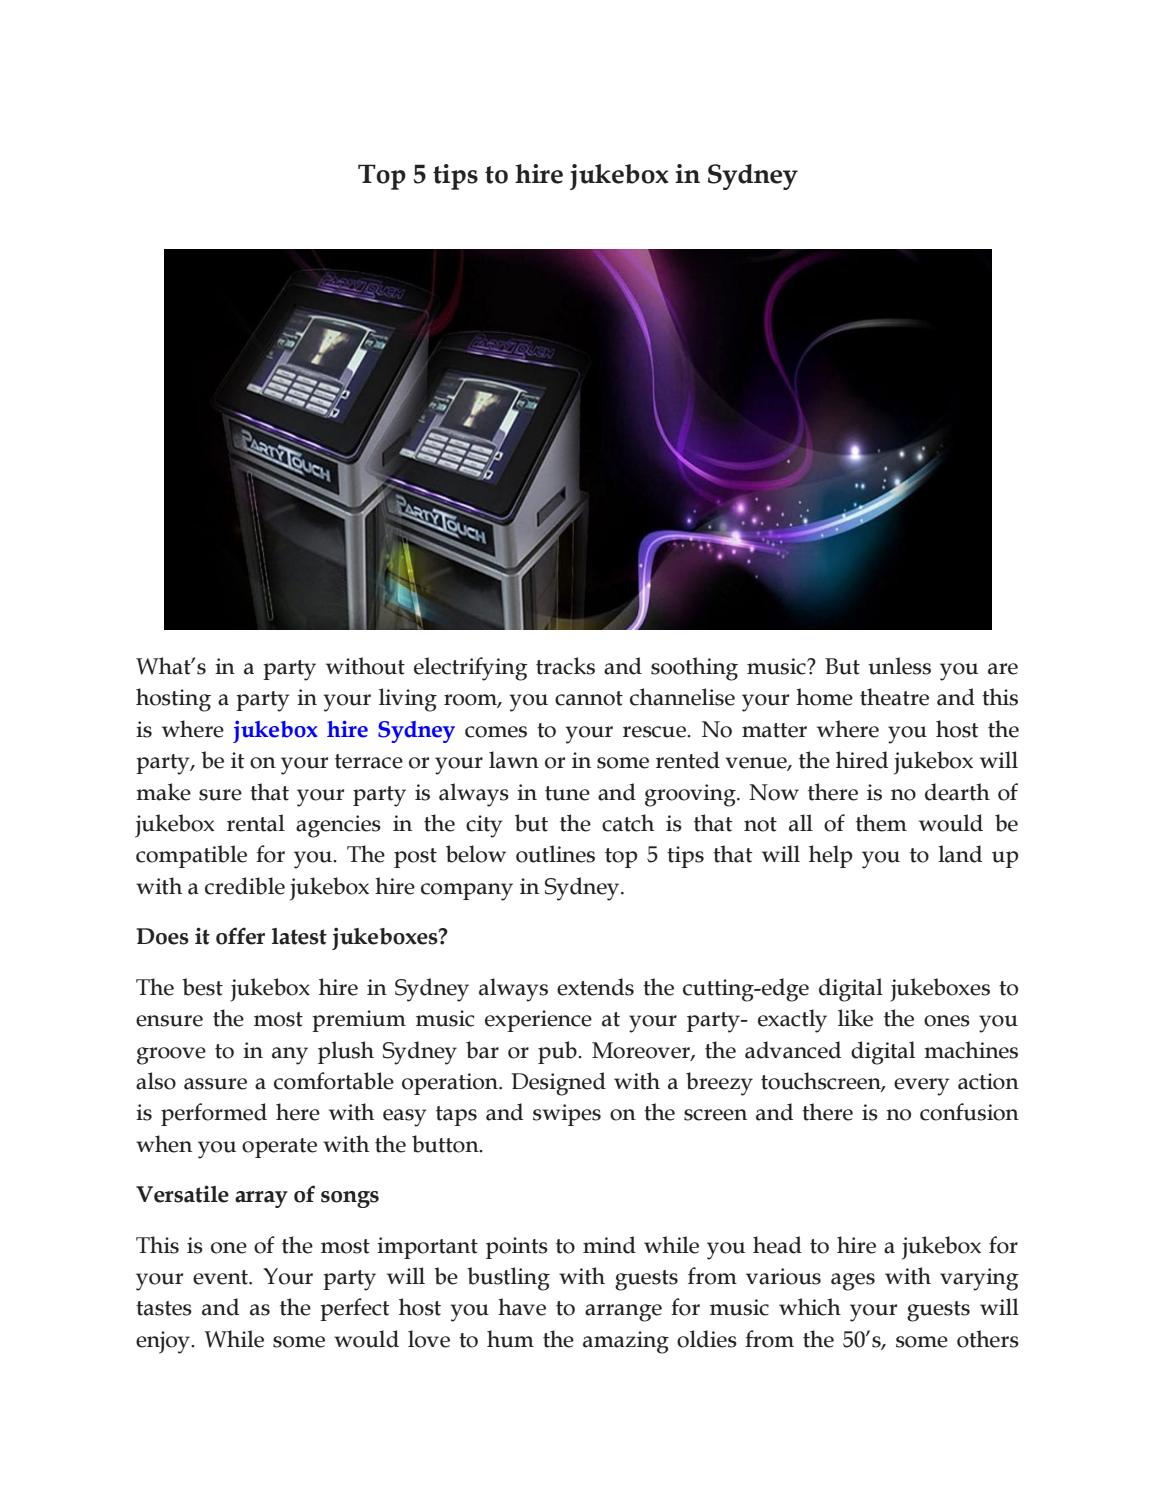 Top 5 tips to hire jukebox in Sydney